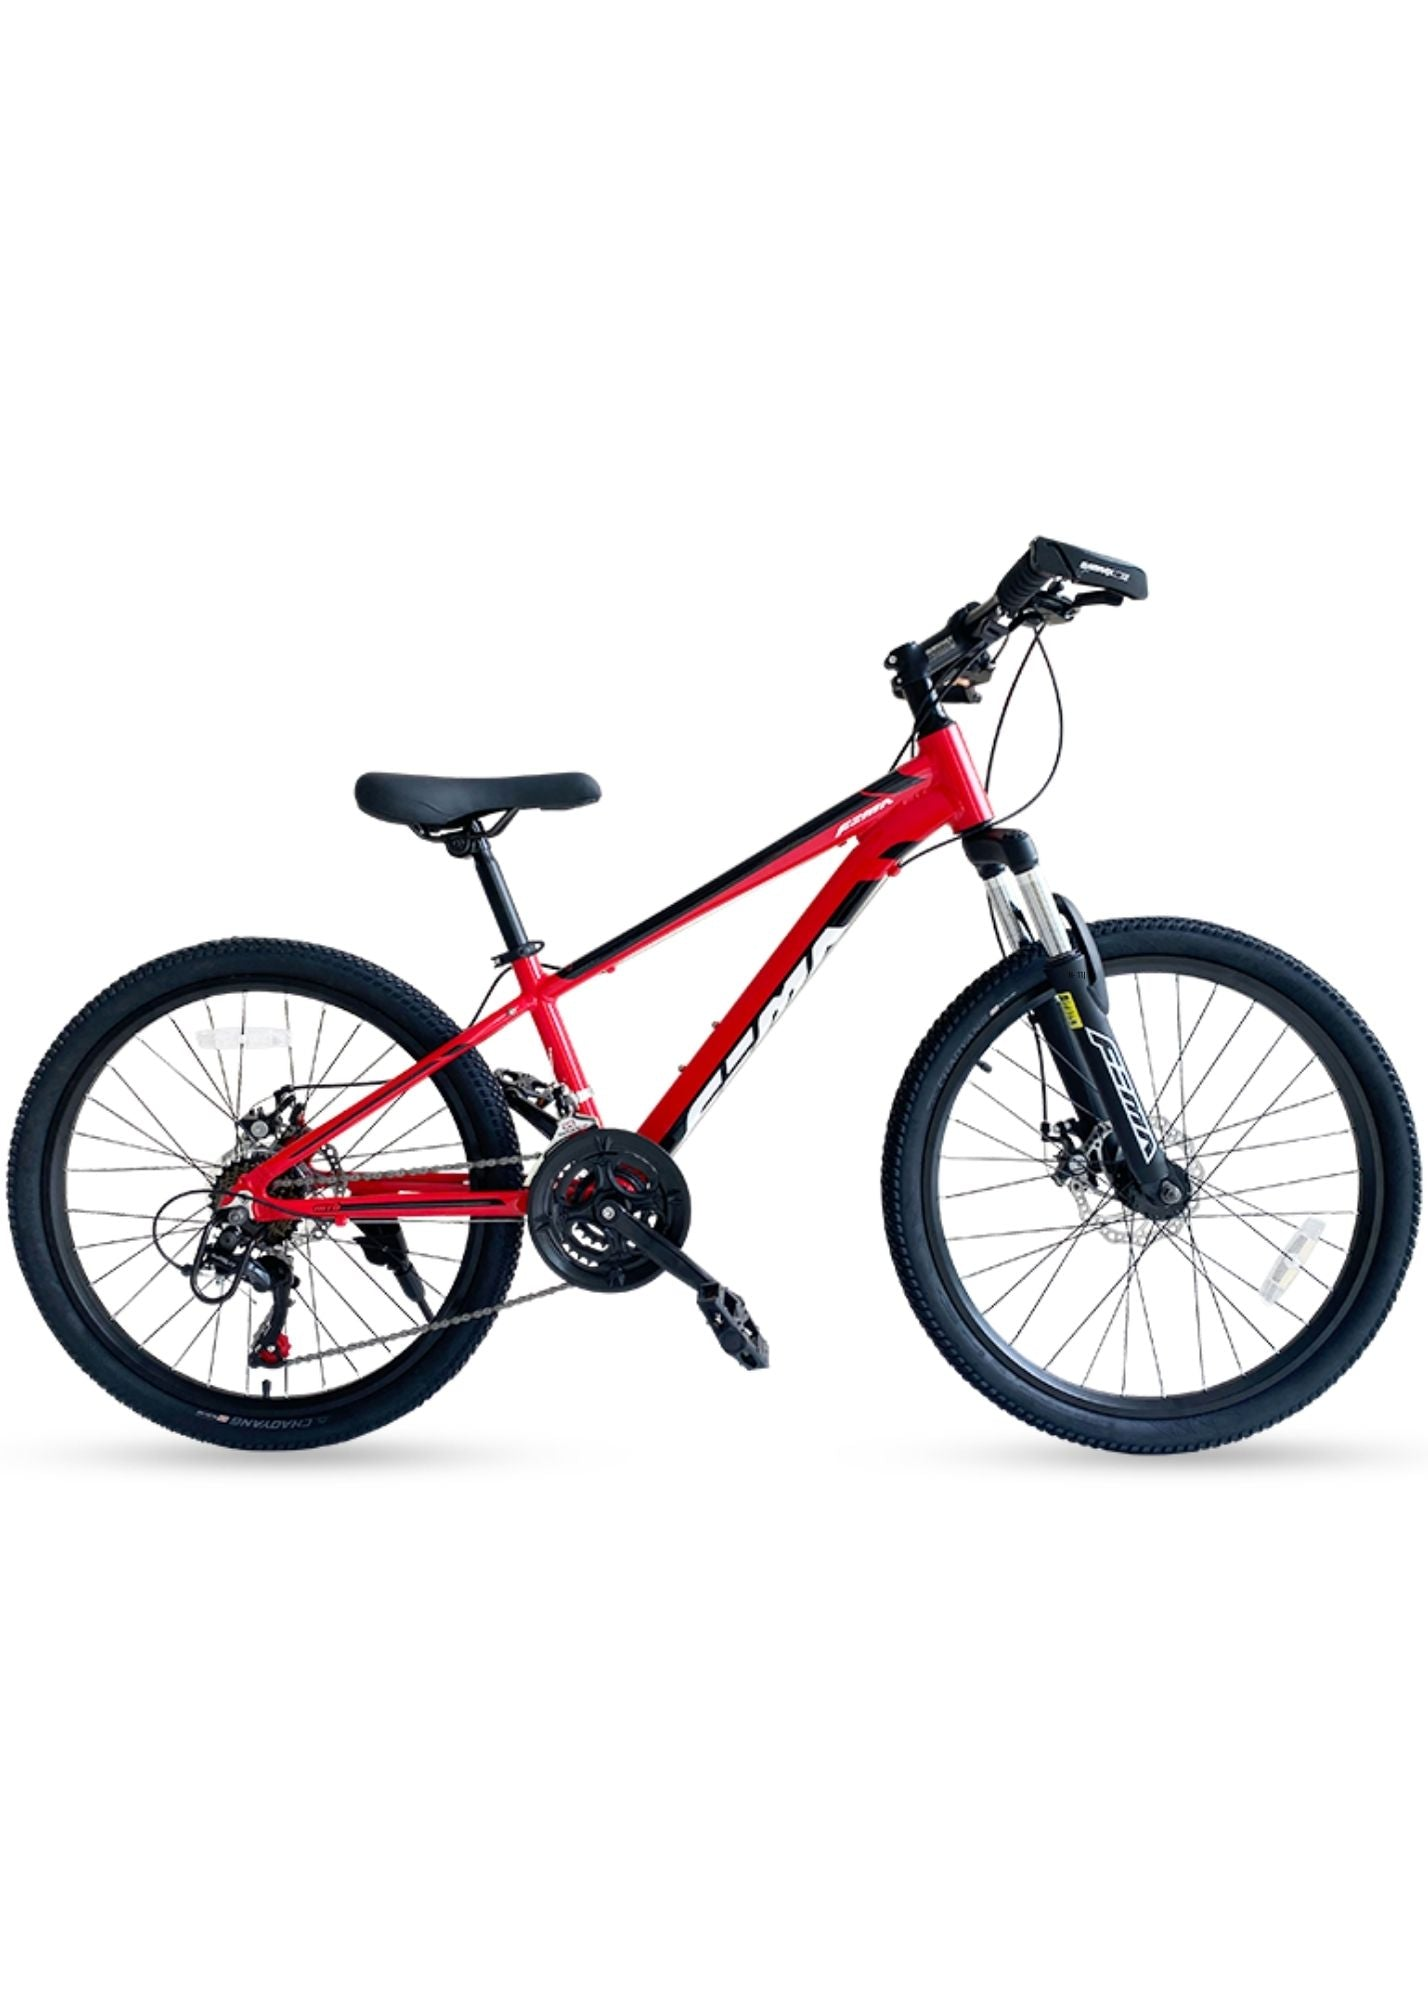 "RoyalBaby RoyAlloy Mountain Bike 24"" 21-S(24-25)-Red"